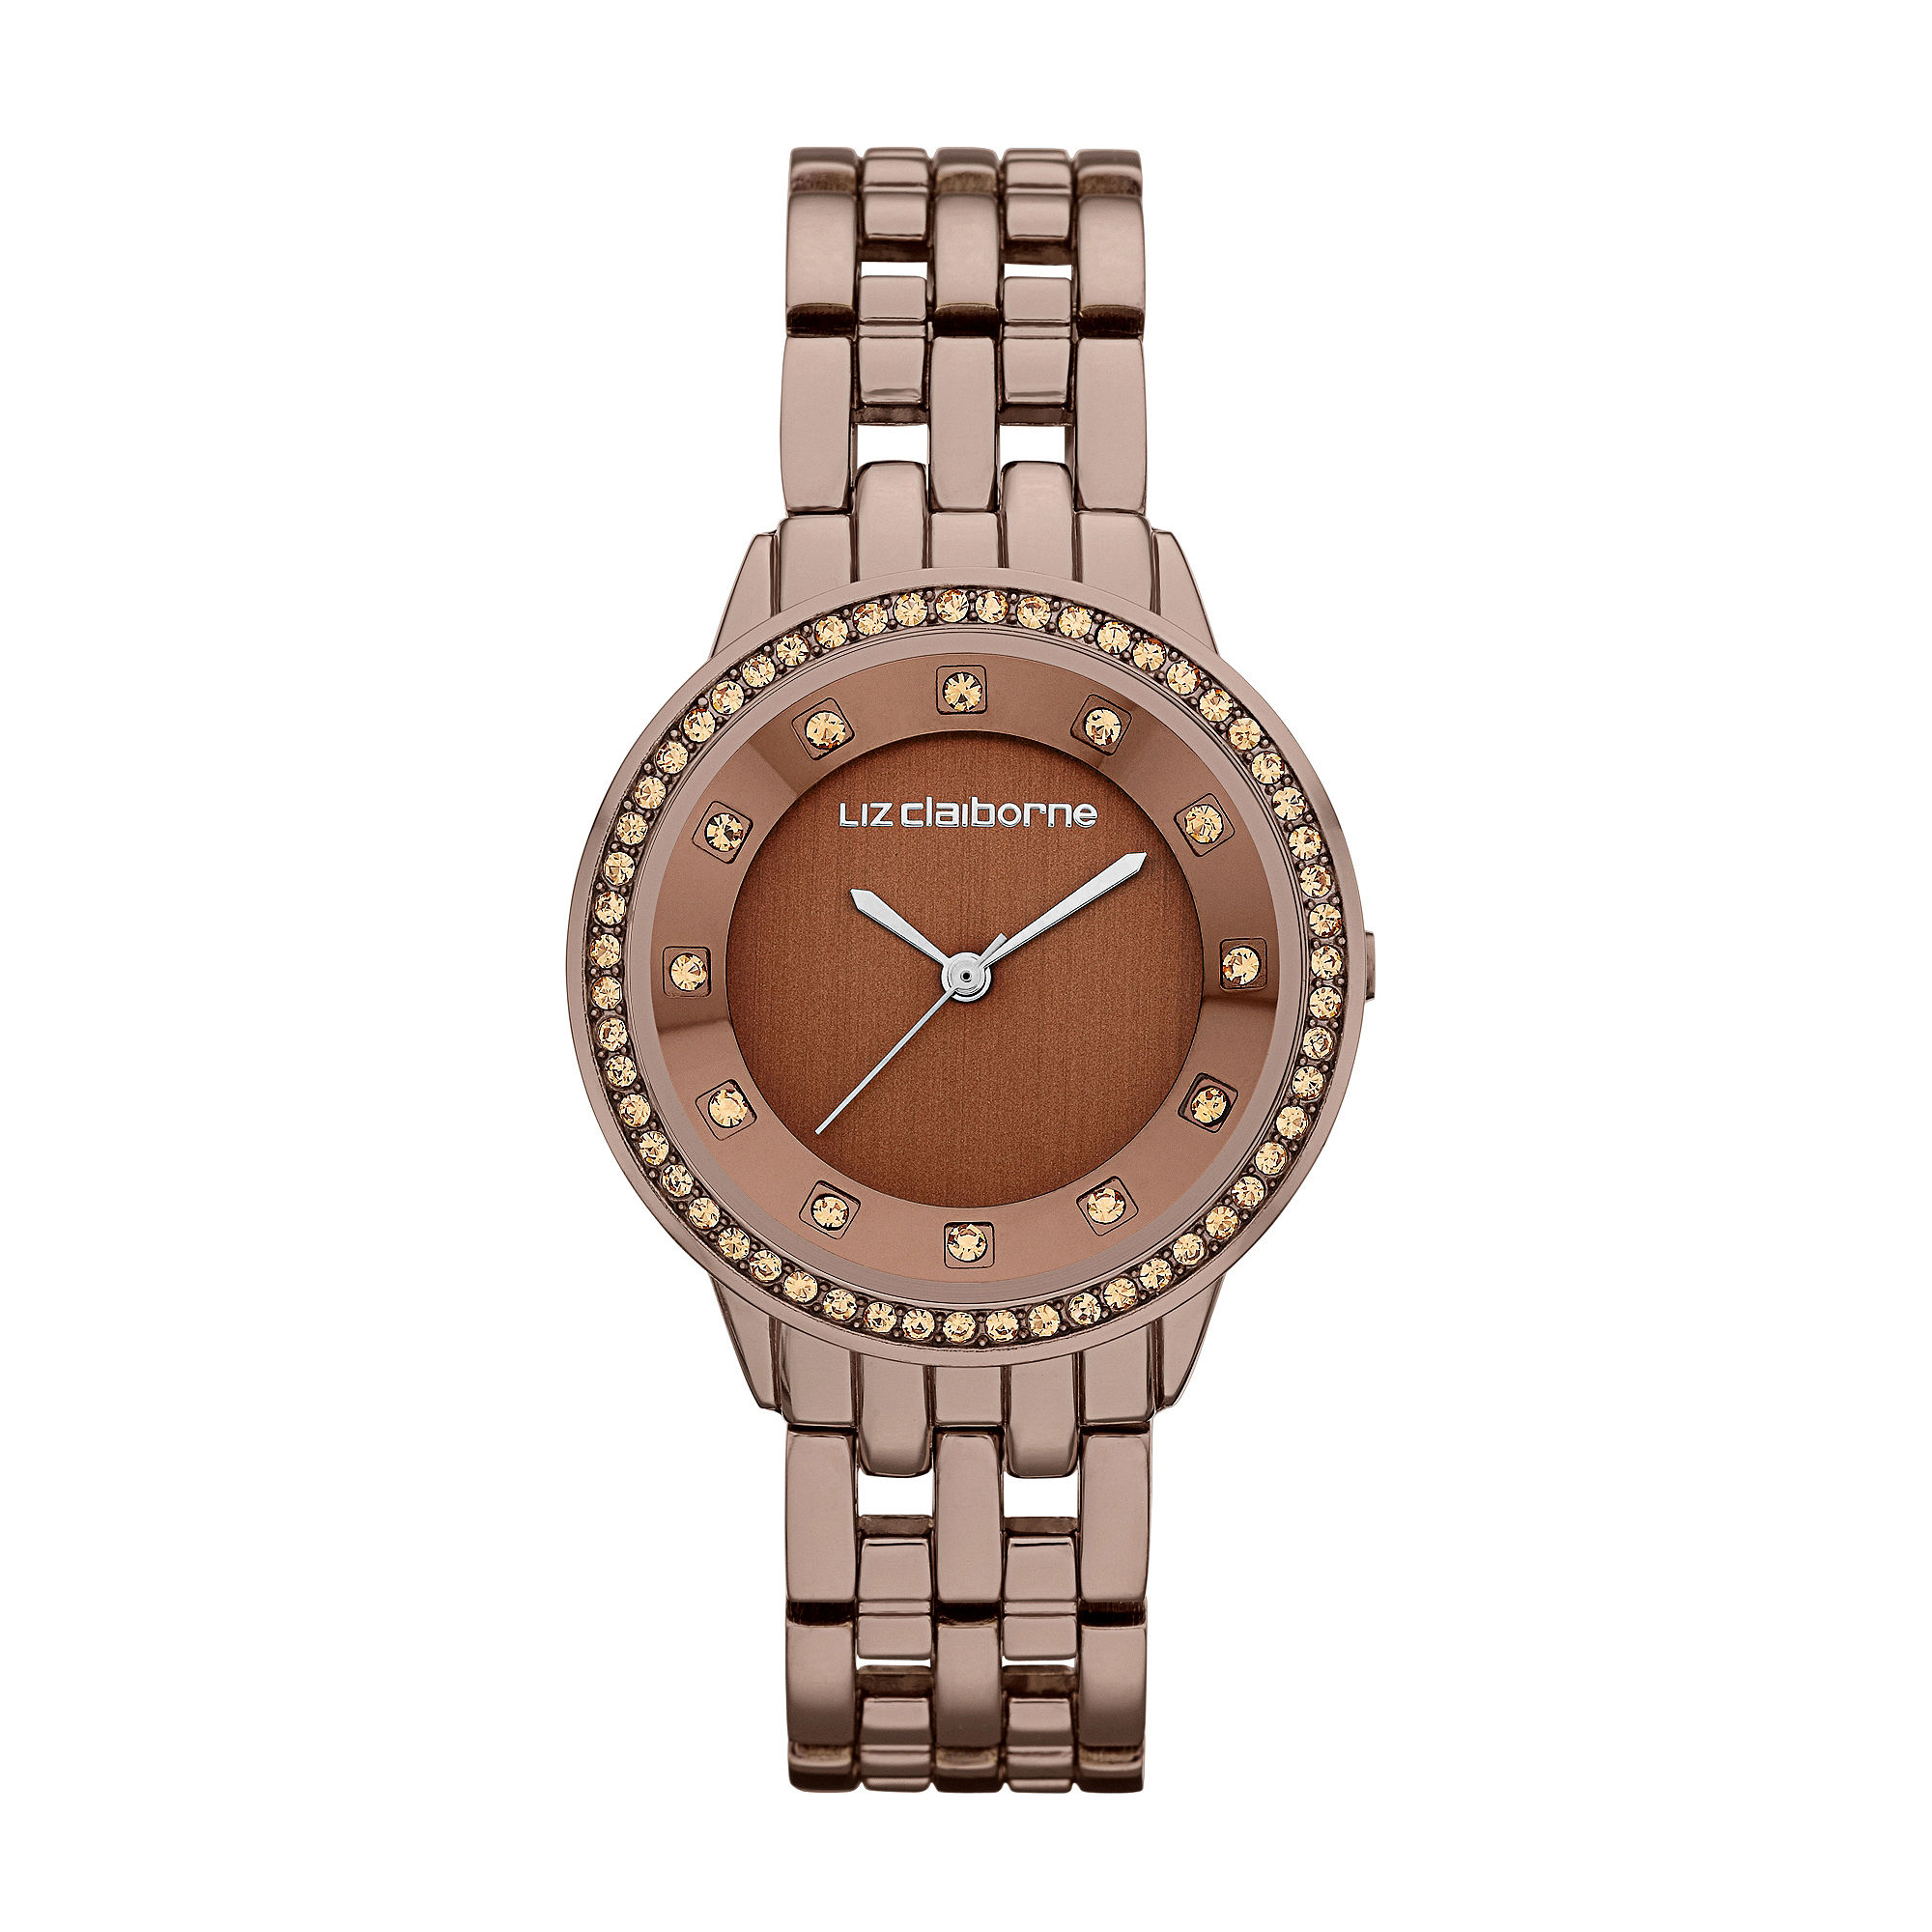 Liz Claiborne Ladies Brown Watch with Crystals